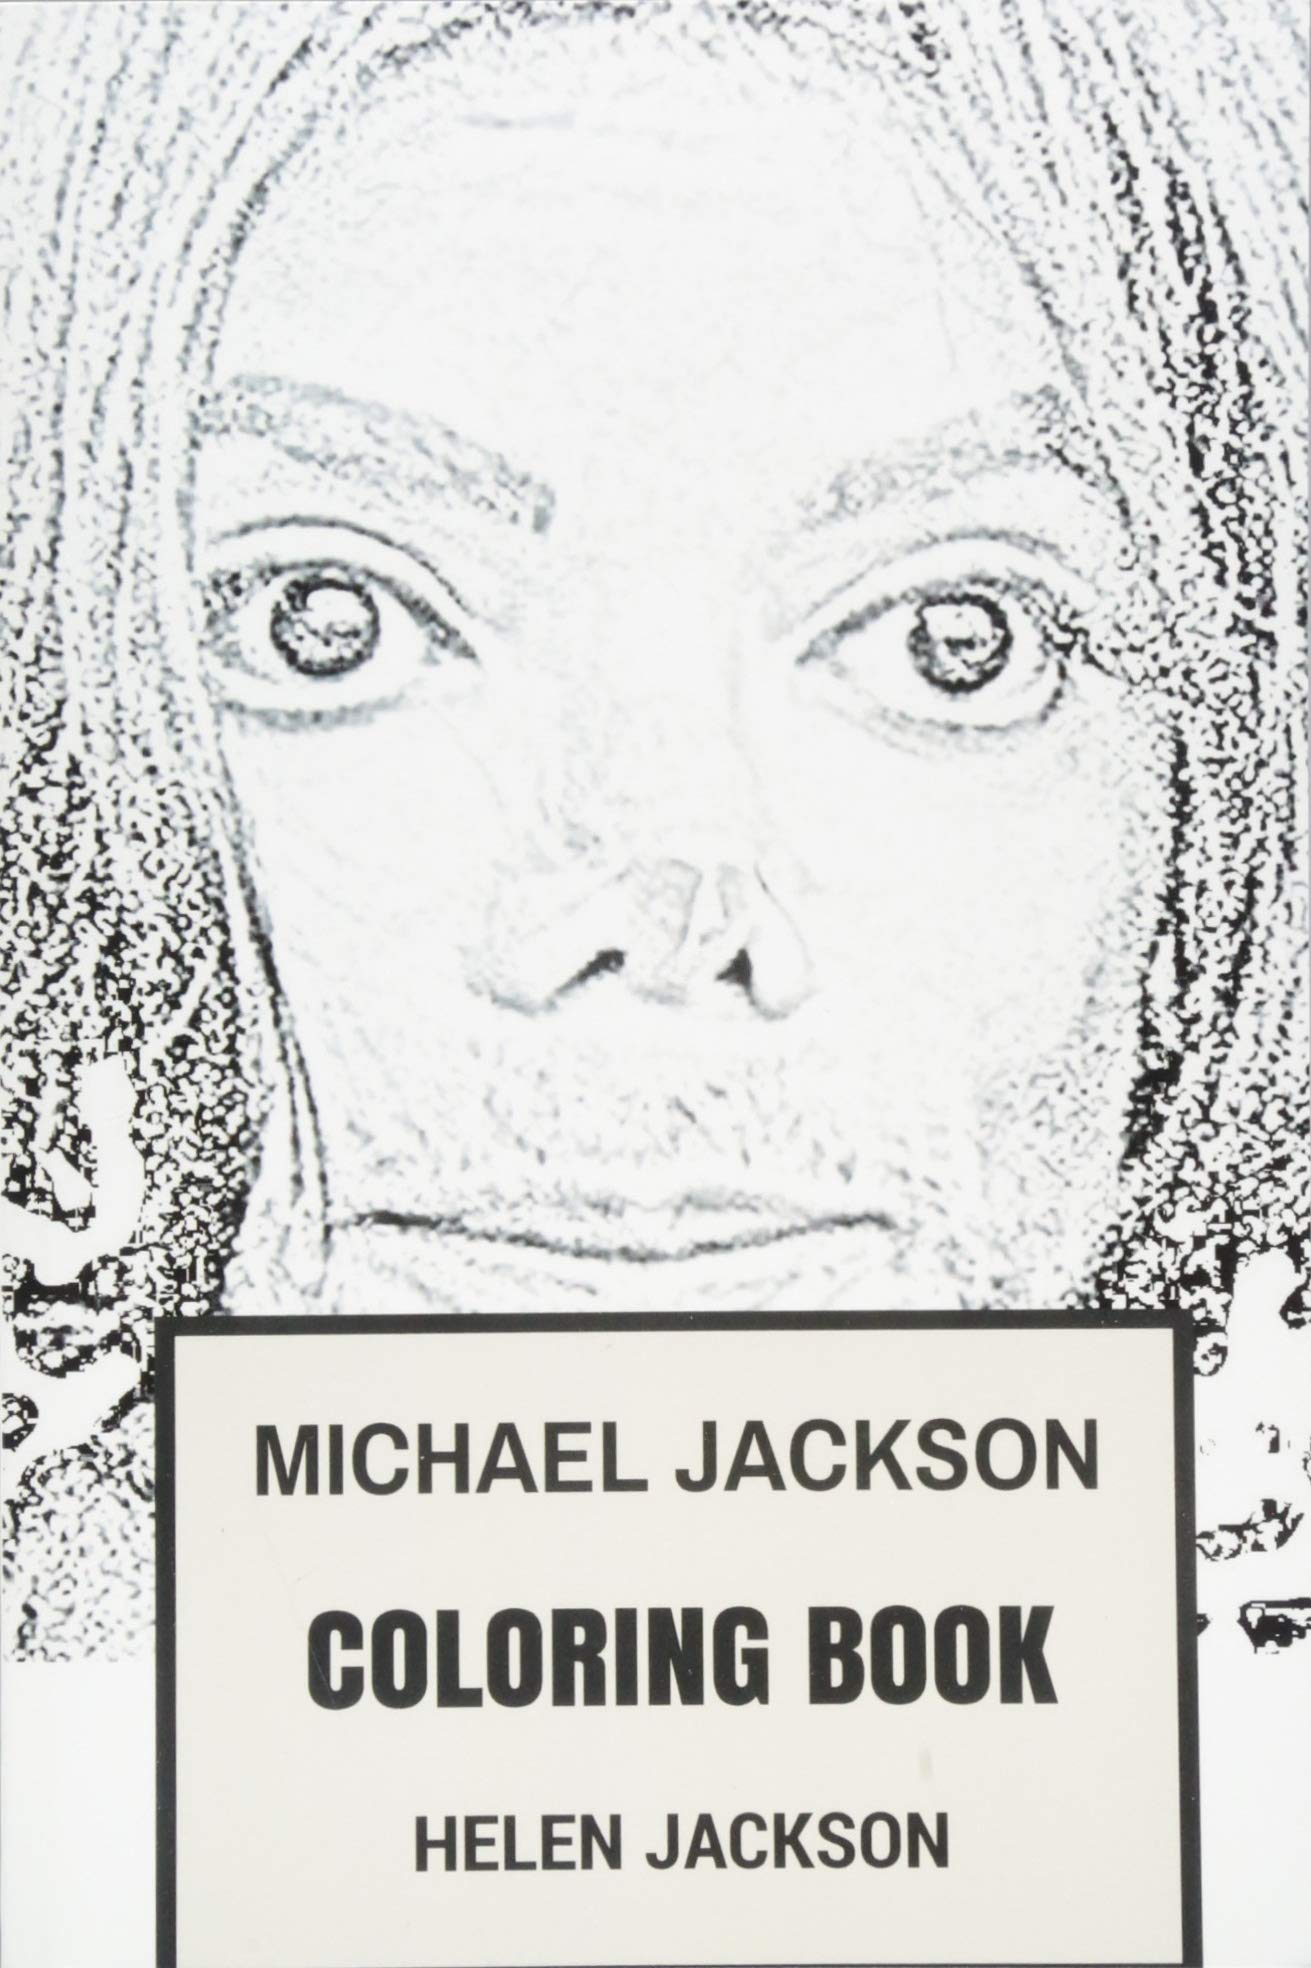 Michael jackson coloring book king of pop and the essence of classic dance music tribute to the best musician of all time adult coloring books paperback